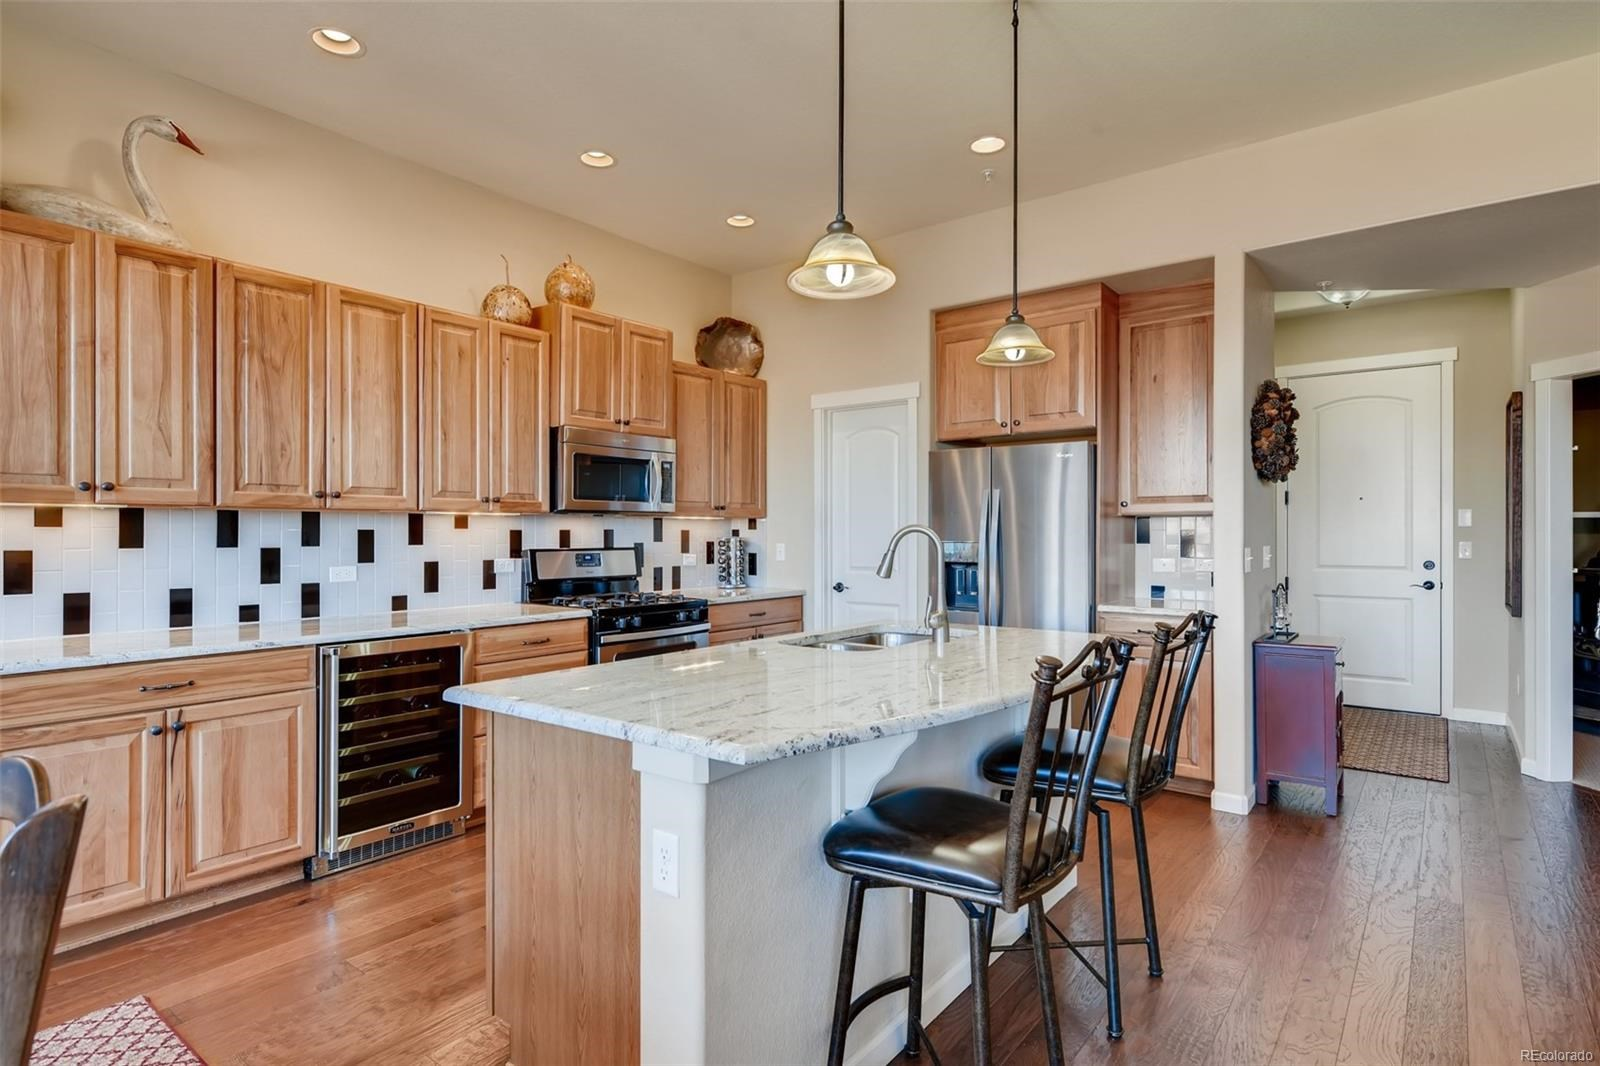 MLS# 6336333 - 9 - 2262 Primo Road #205, Highlands Ranch, CO 80129